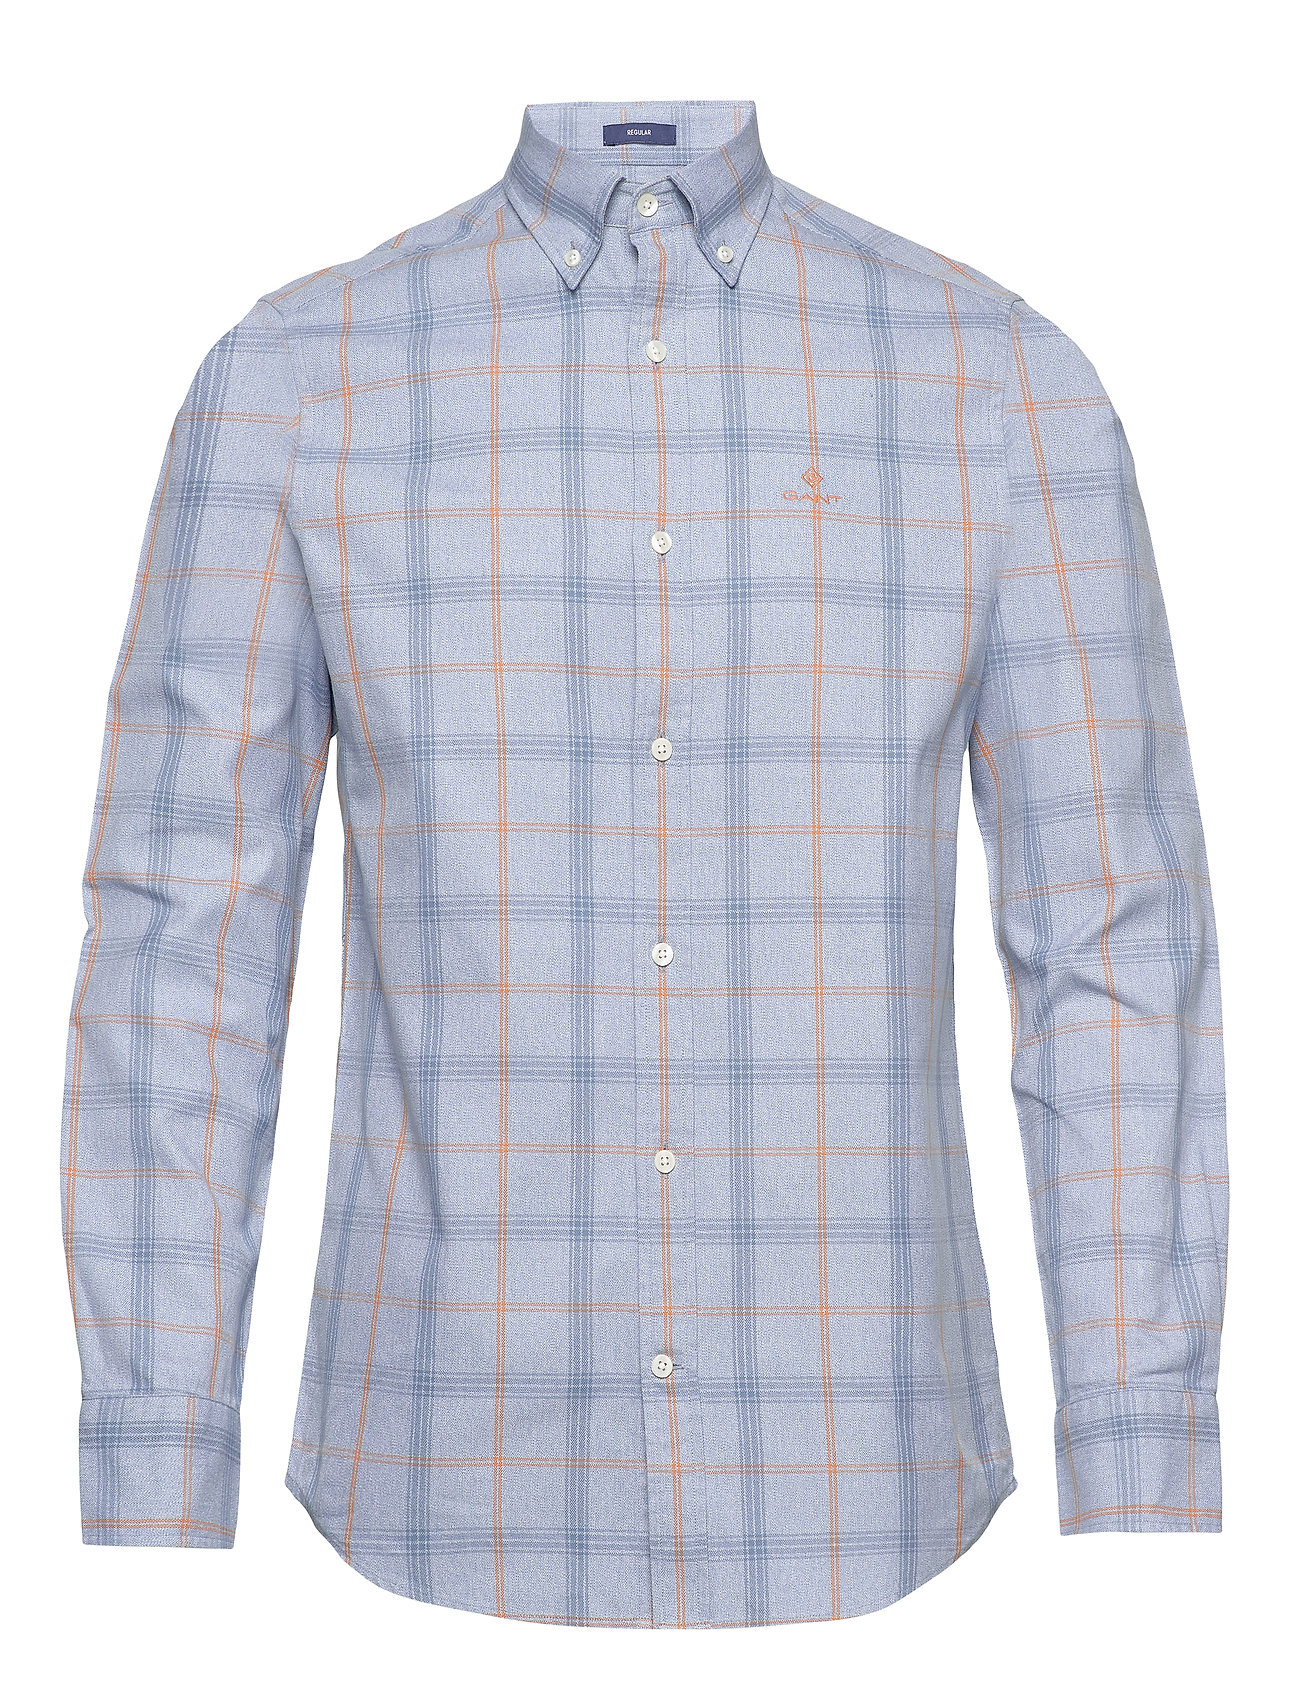 Gant D1. HEATHER OXFORD  PLAID REG BD - ATLANTIC BLUE